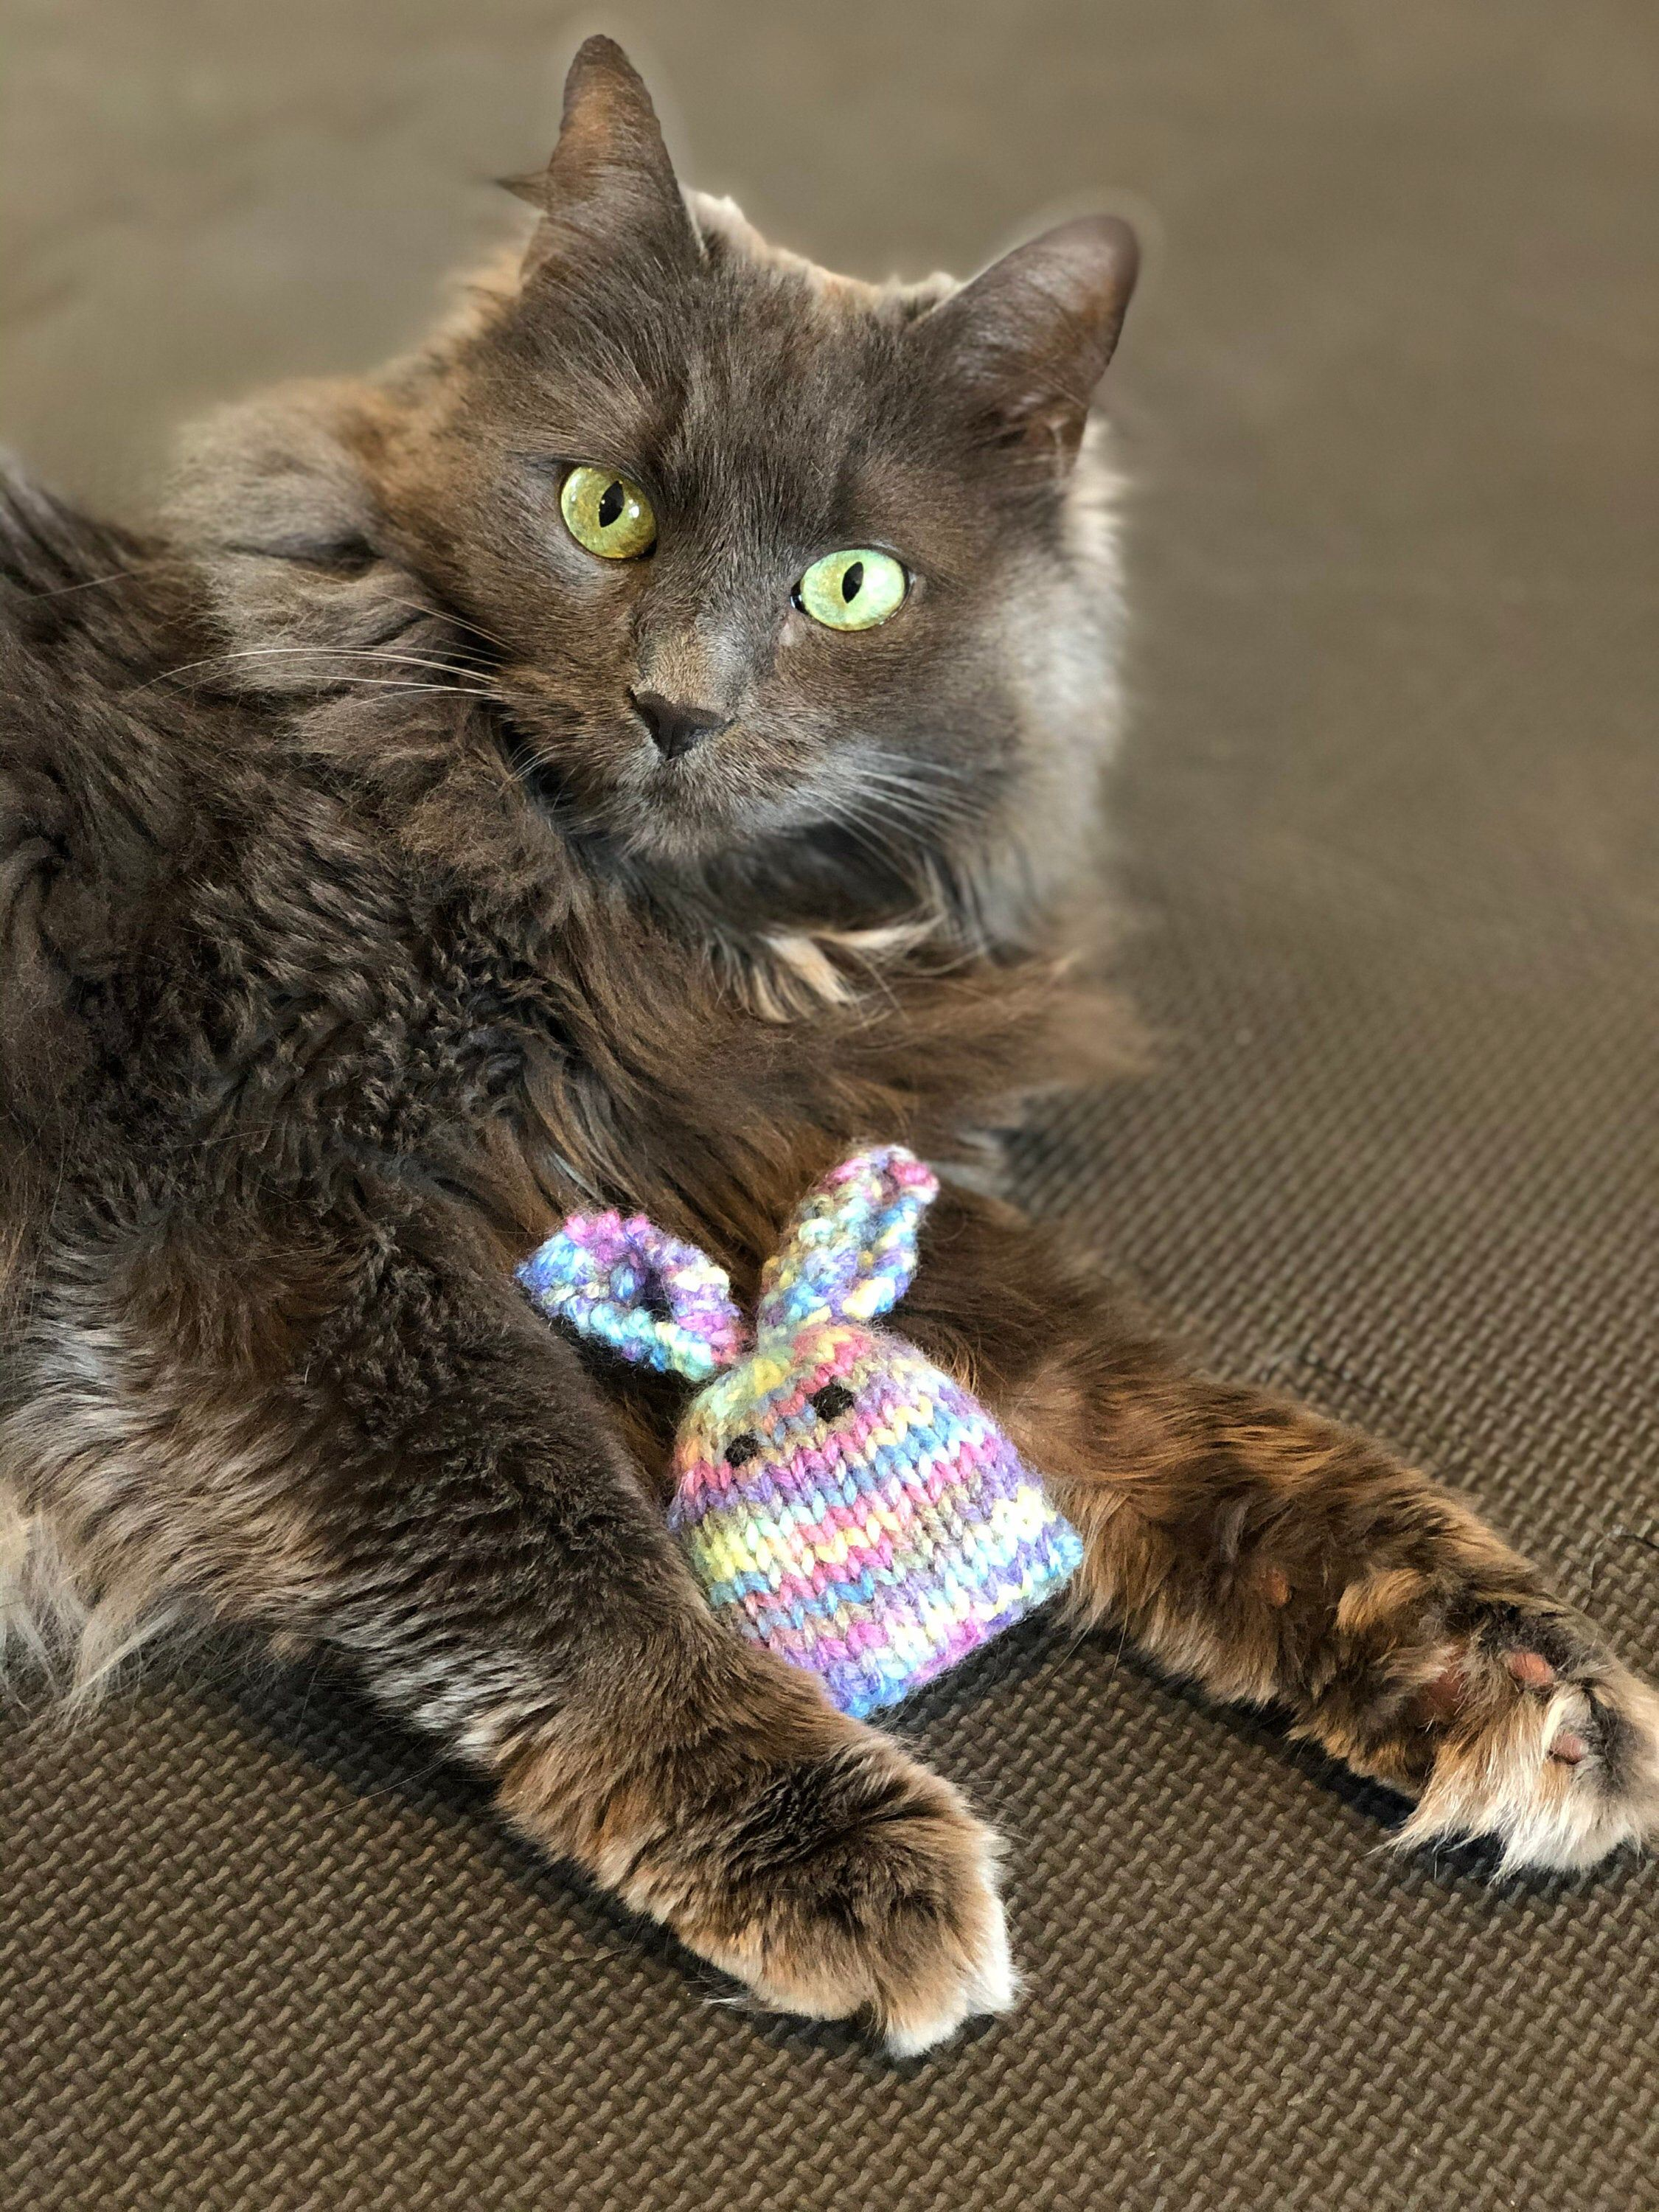 Cat Toy Catnip Toy Knit Cat Toy Knit Bunny Cat Toy Knit Bunny Catnip Cat Toy Cat Kitty Kitty Cat Hand Knit Cat Toy Pet Toy Catnip Cat Toys Pet Toys